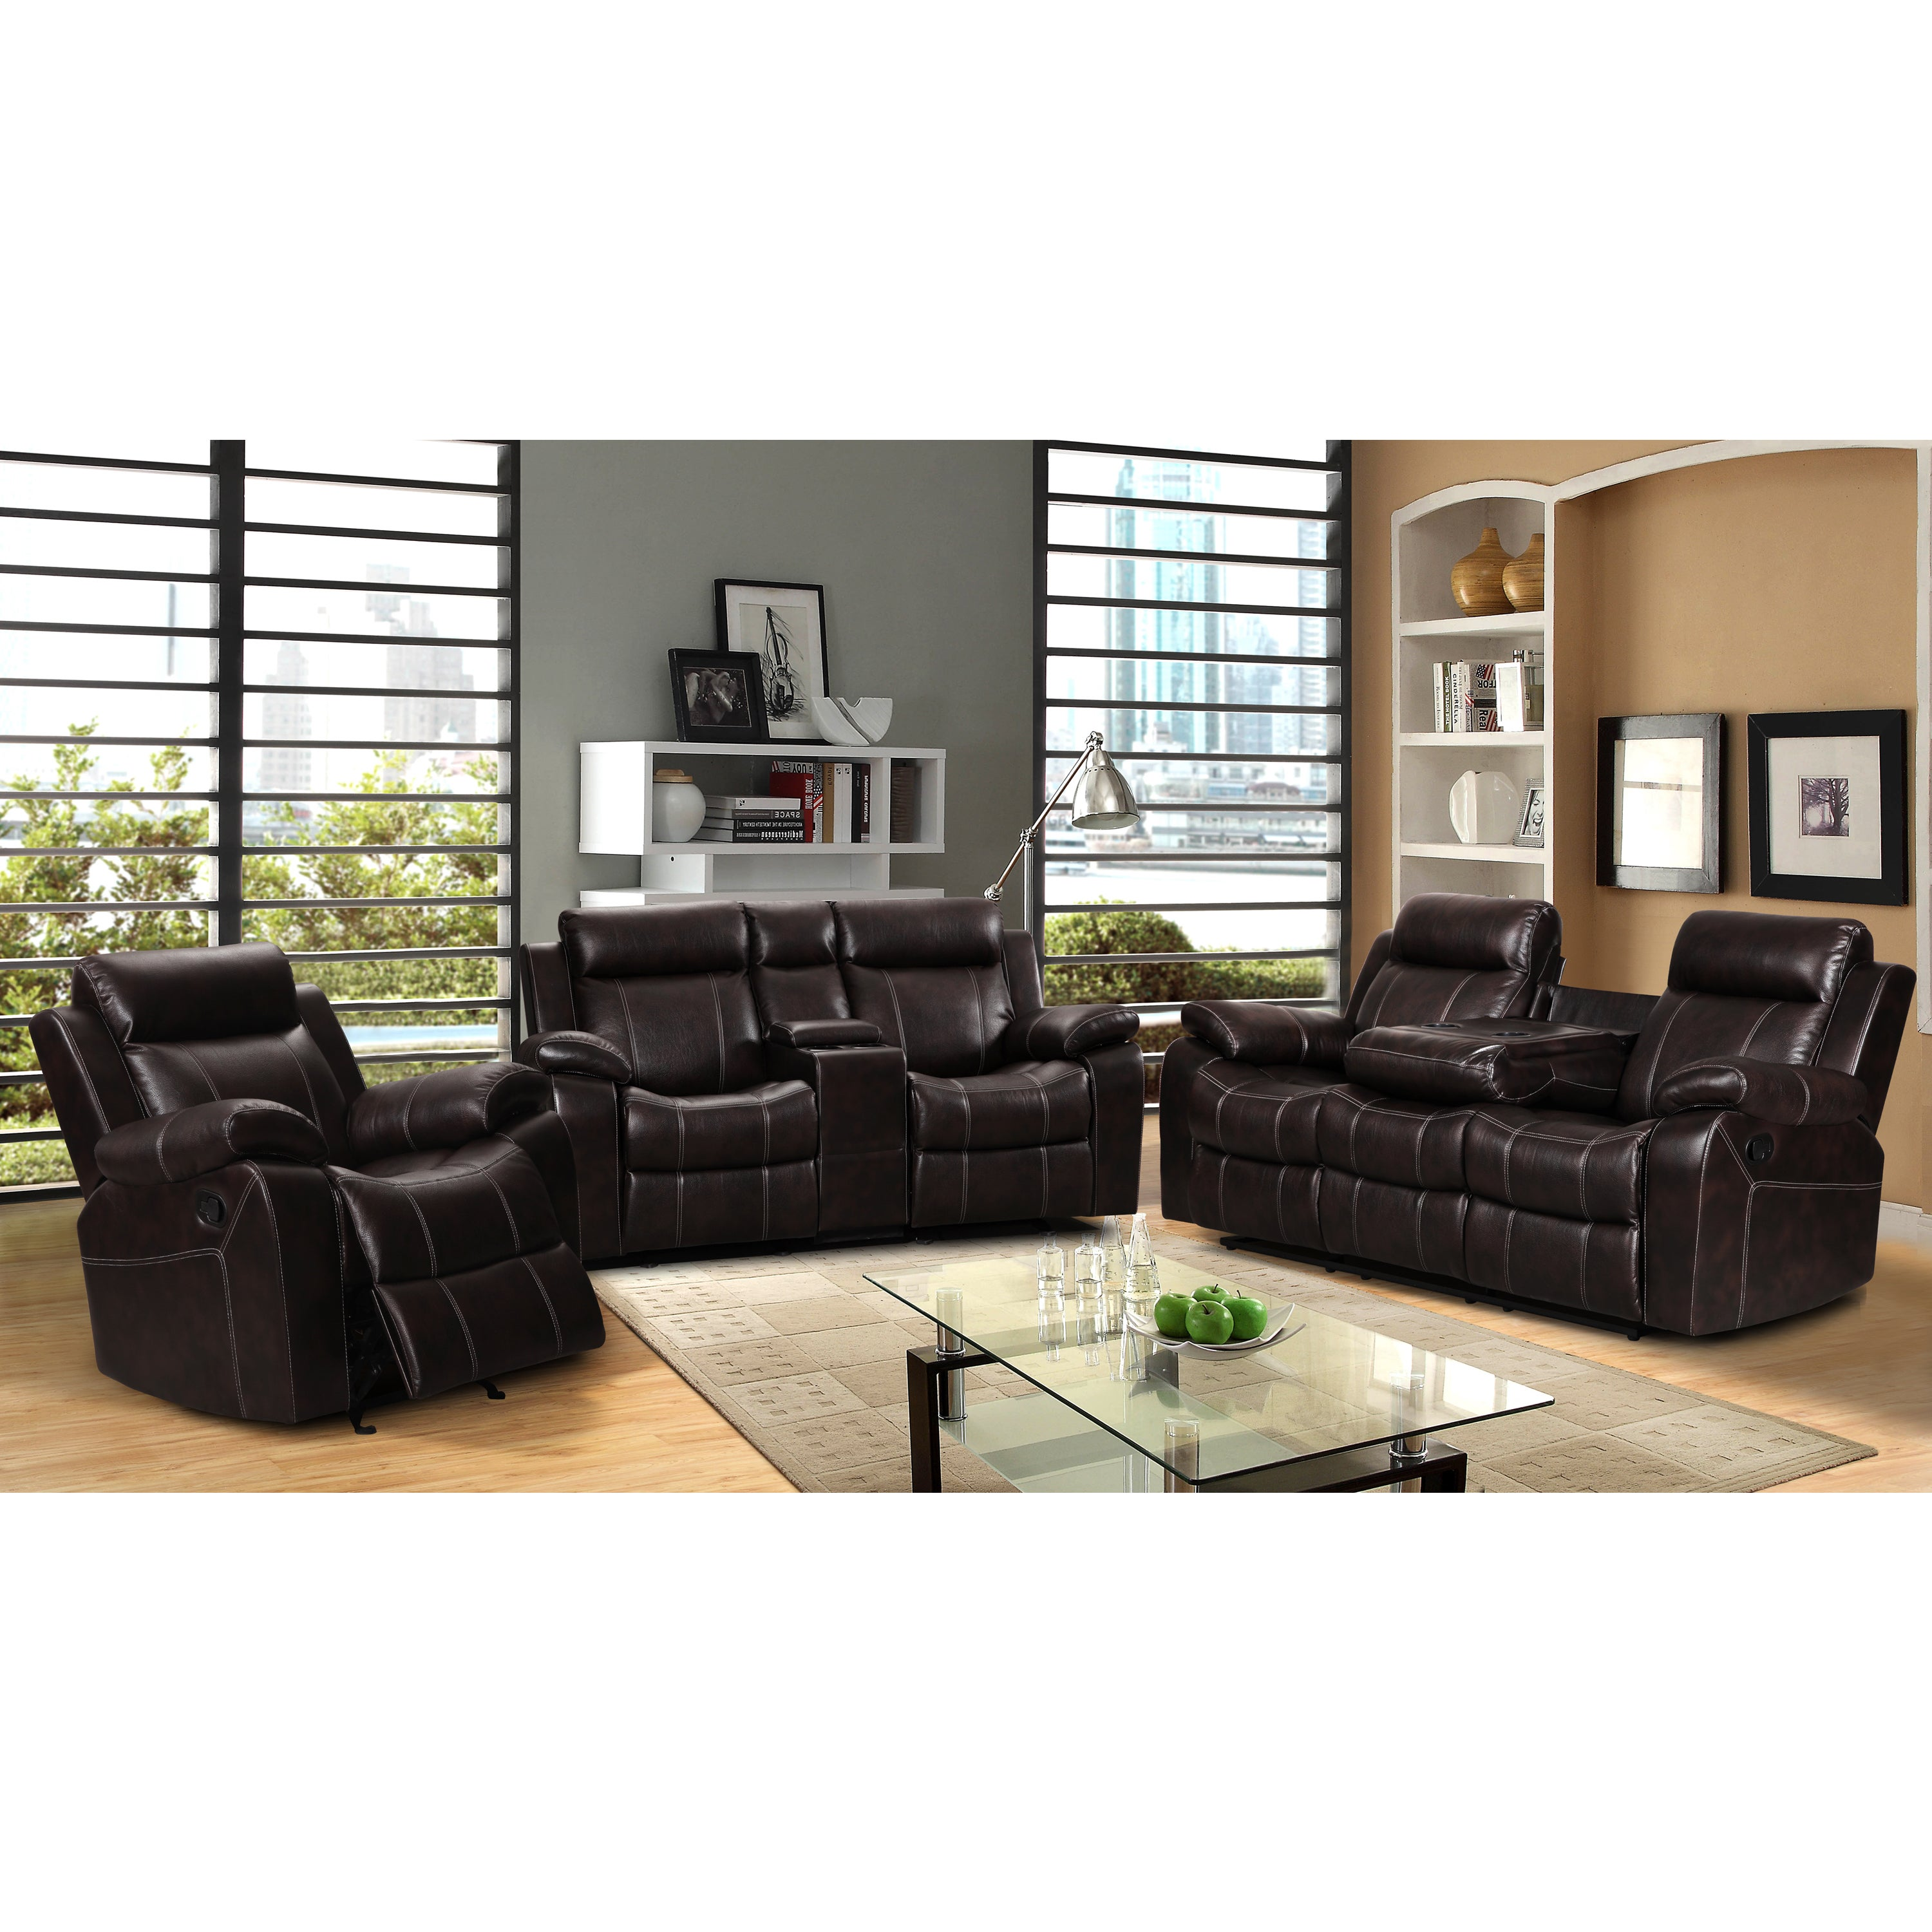 Swell Sherry Dark Brown Leather Air 3 Pc Reclining Sofa Set And Rocking Chair Inzonedesignstudio Interior Chair Design Inzonedesignstudiocom